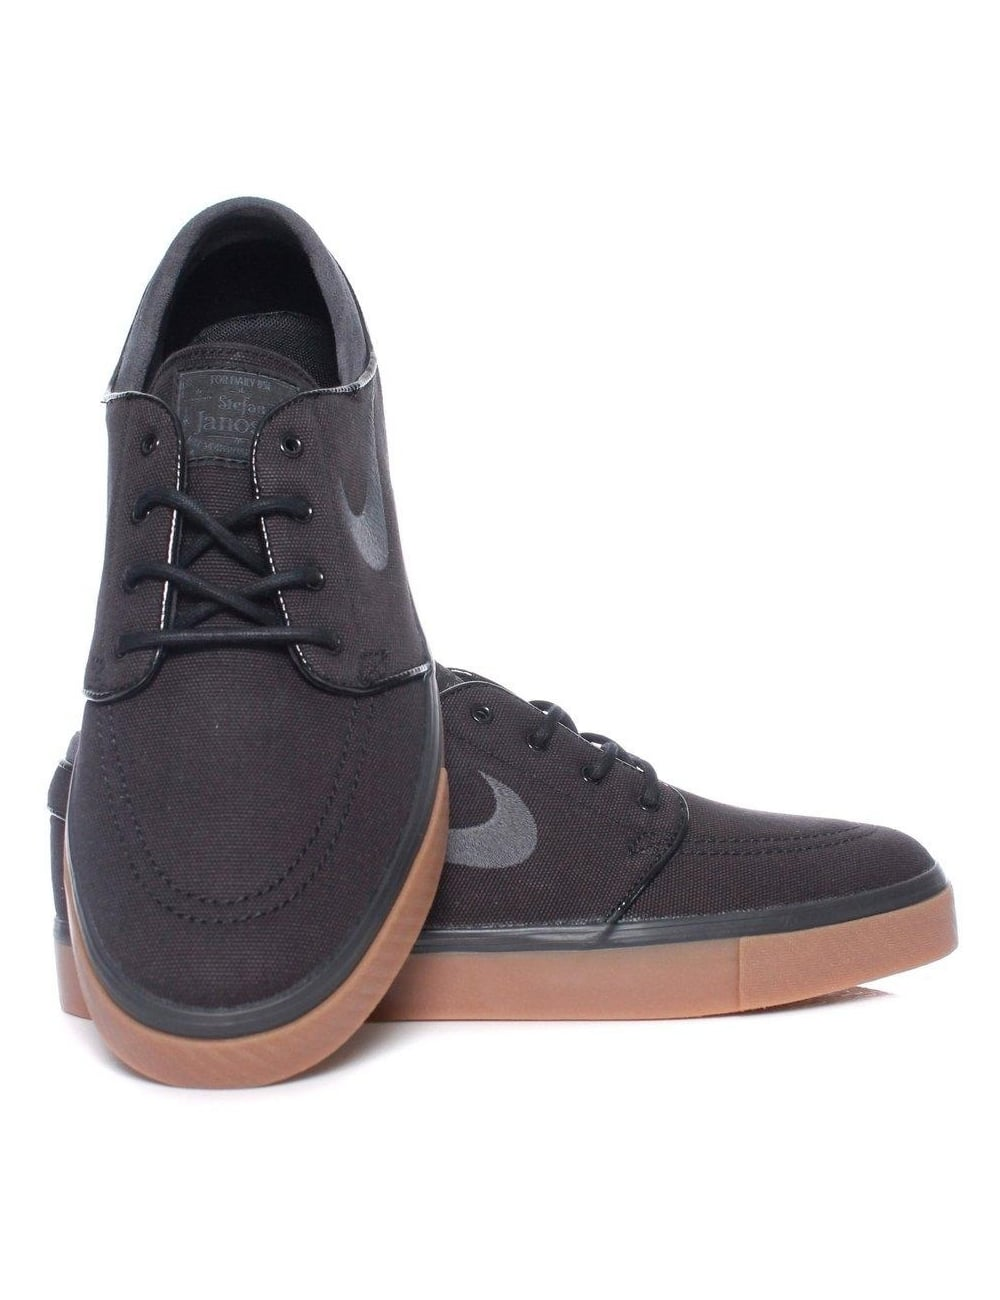 b8bed4a686a4d1 Nike SB Stefan Janoski Trainers - Black Anthracite - Footwear from ...